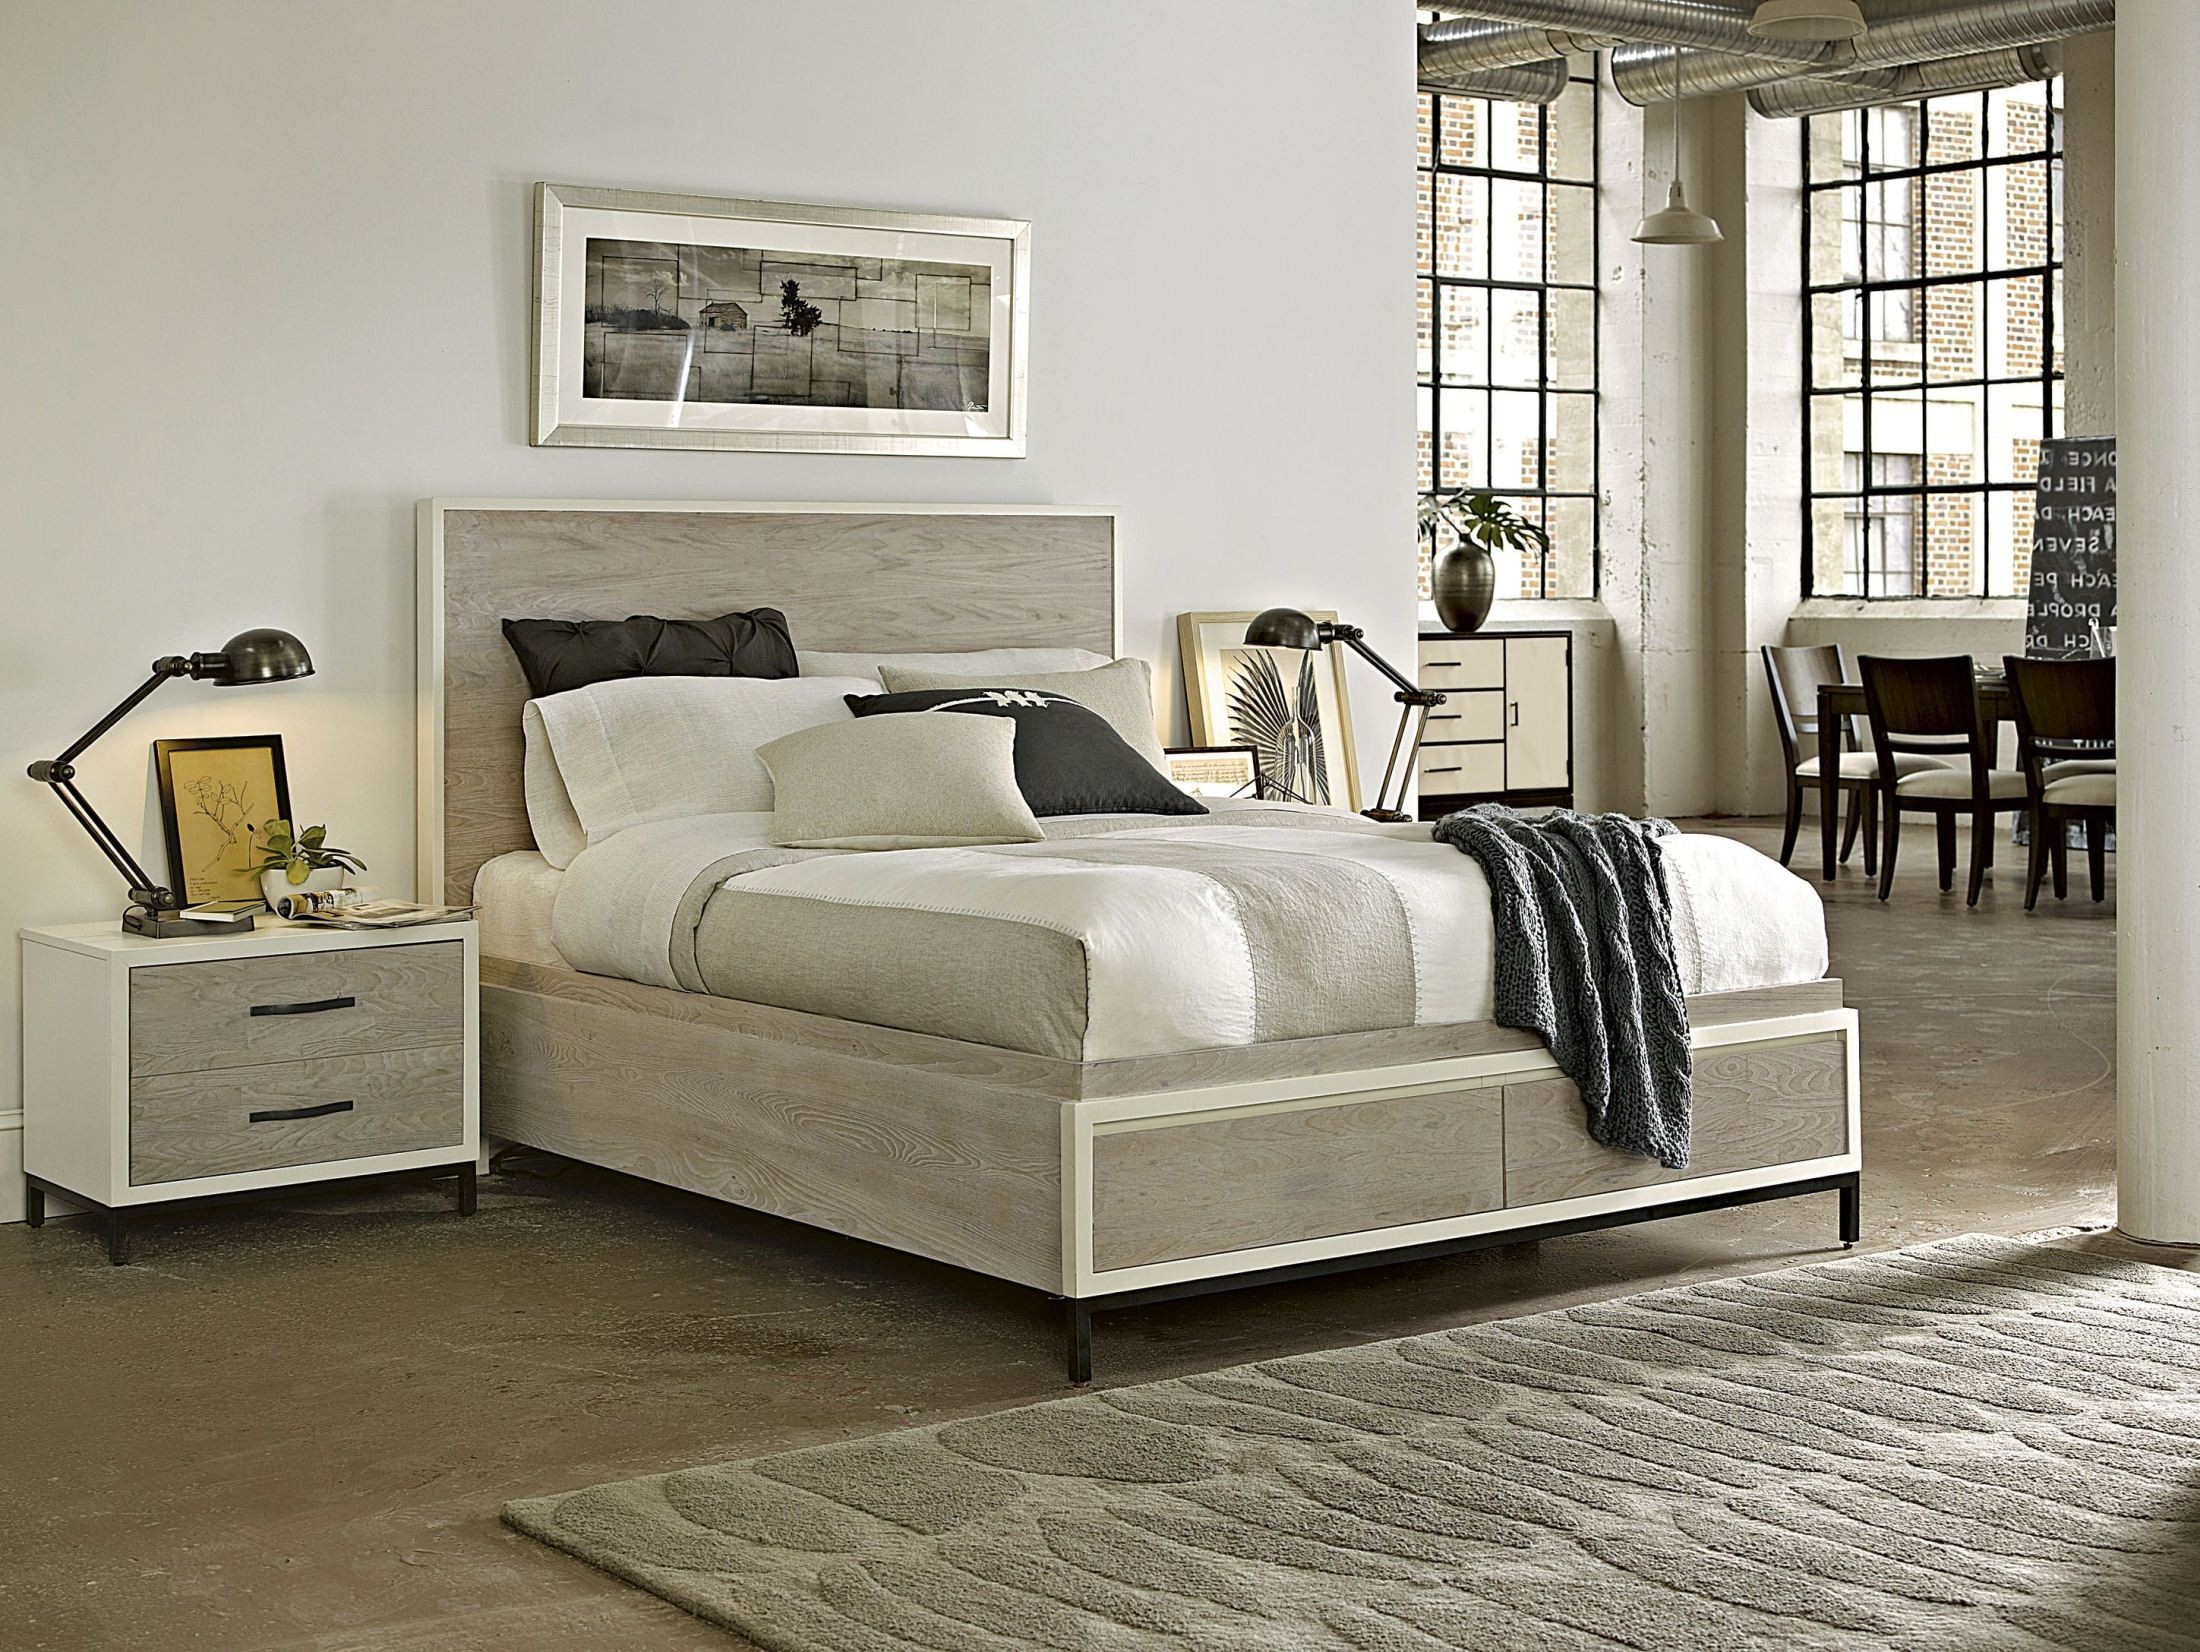 Spencer King Storage Bed From Universal 219220sb